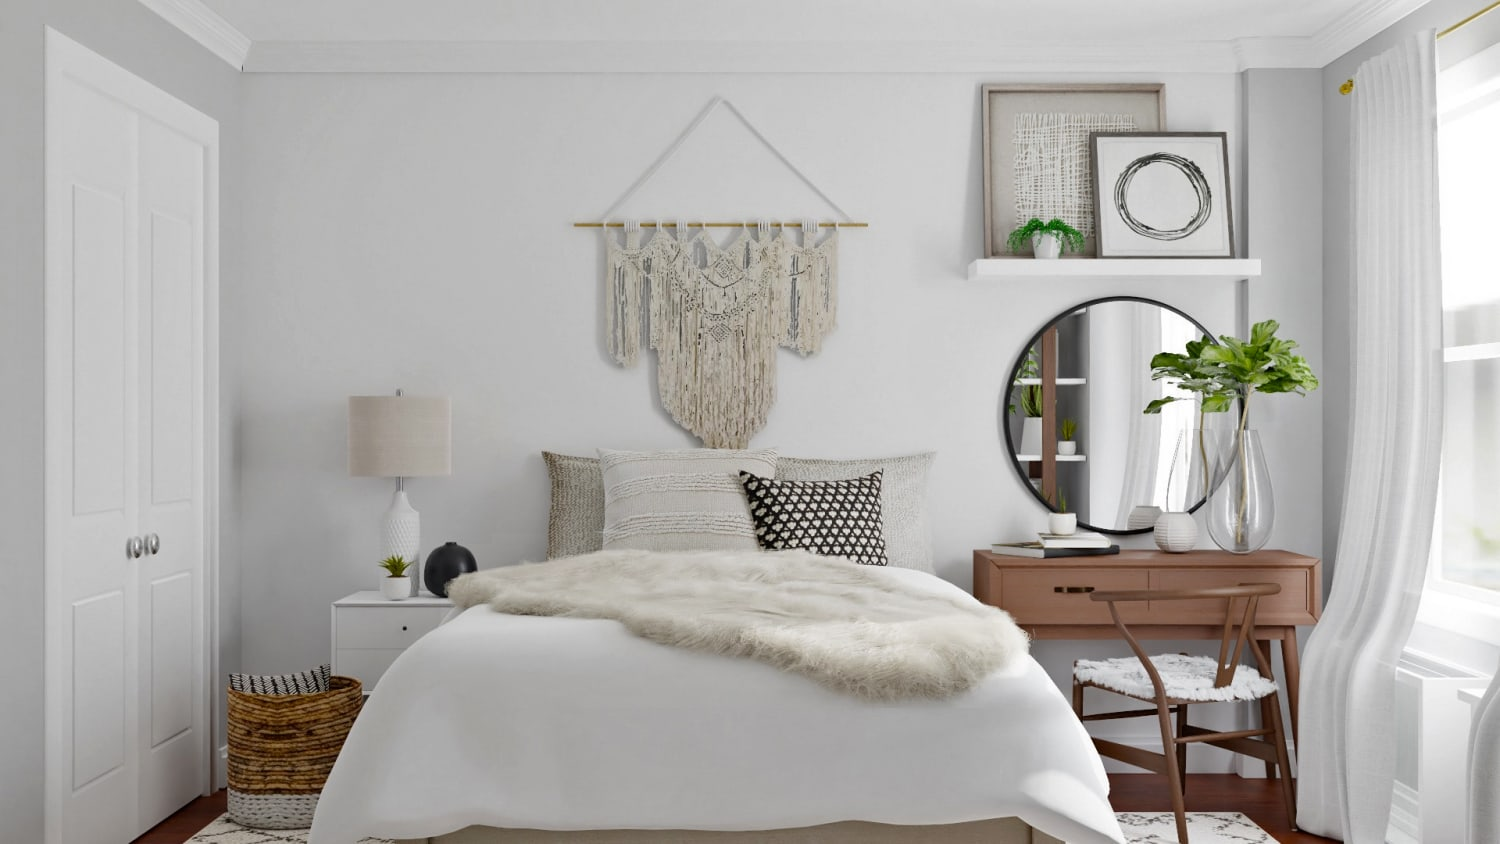 Get Inspiration From Monochromatic Color Palette Boho Eclectic Bedroom Design By Spacejoy